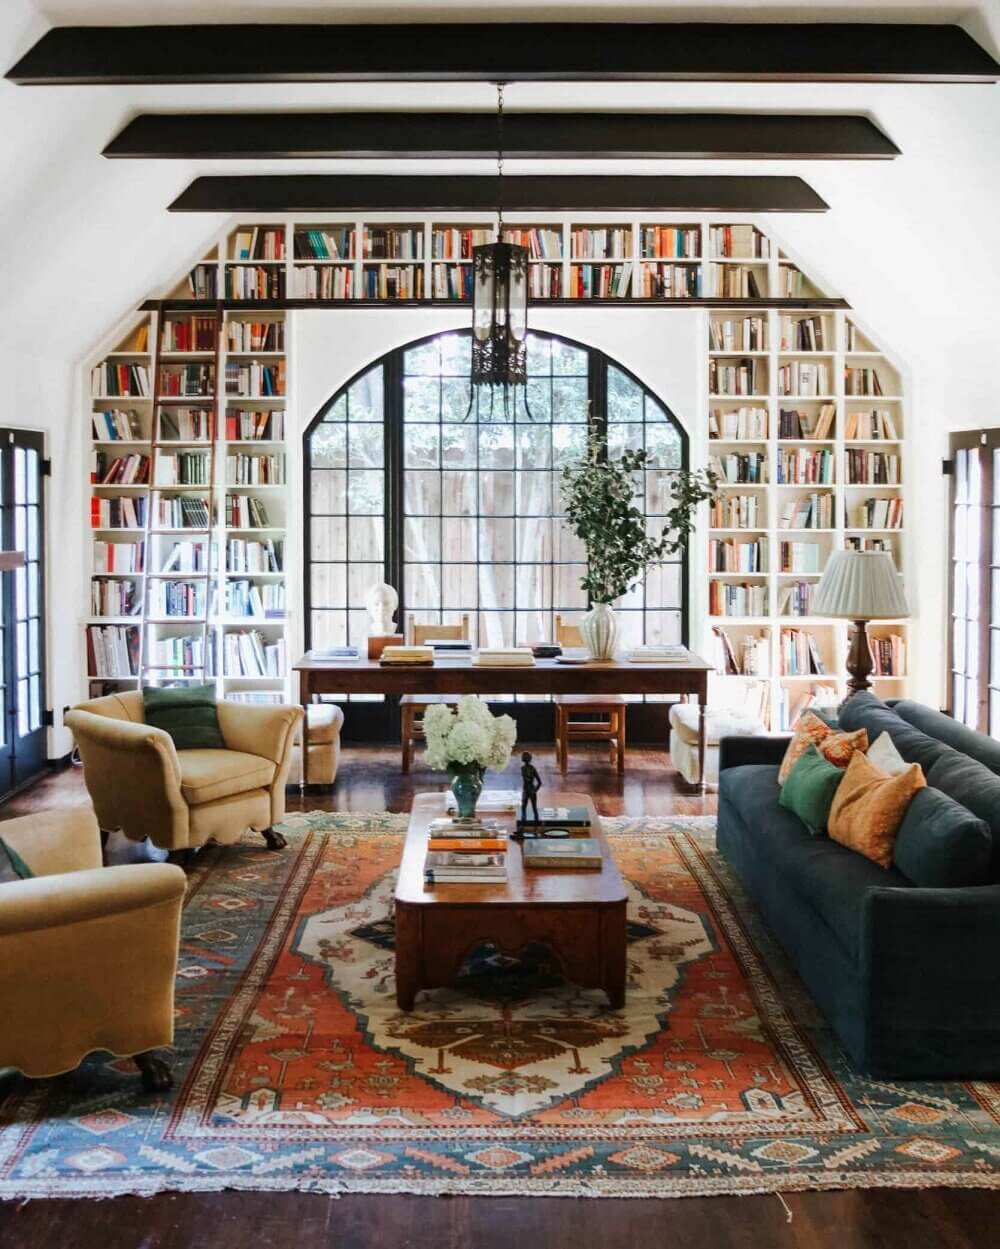 Bookshelves Envy In A 1920s English Tudor House in Los Angeles